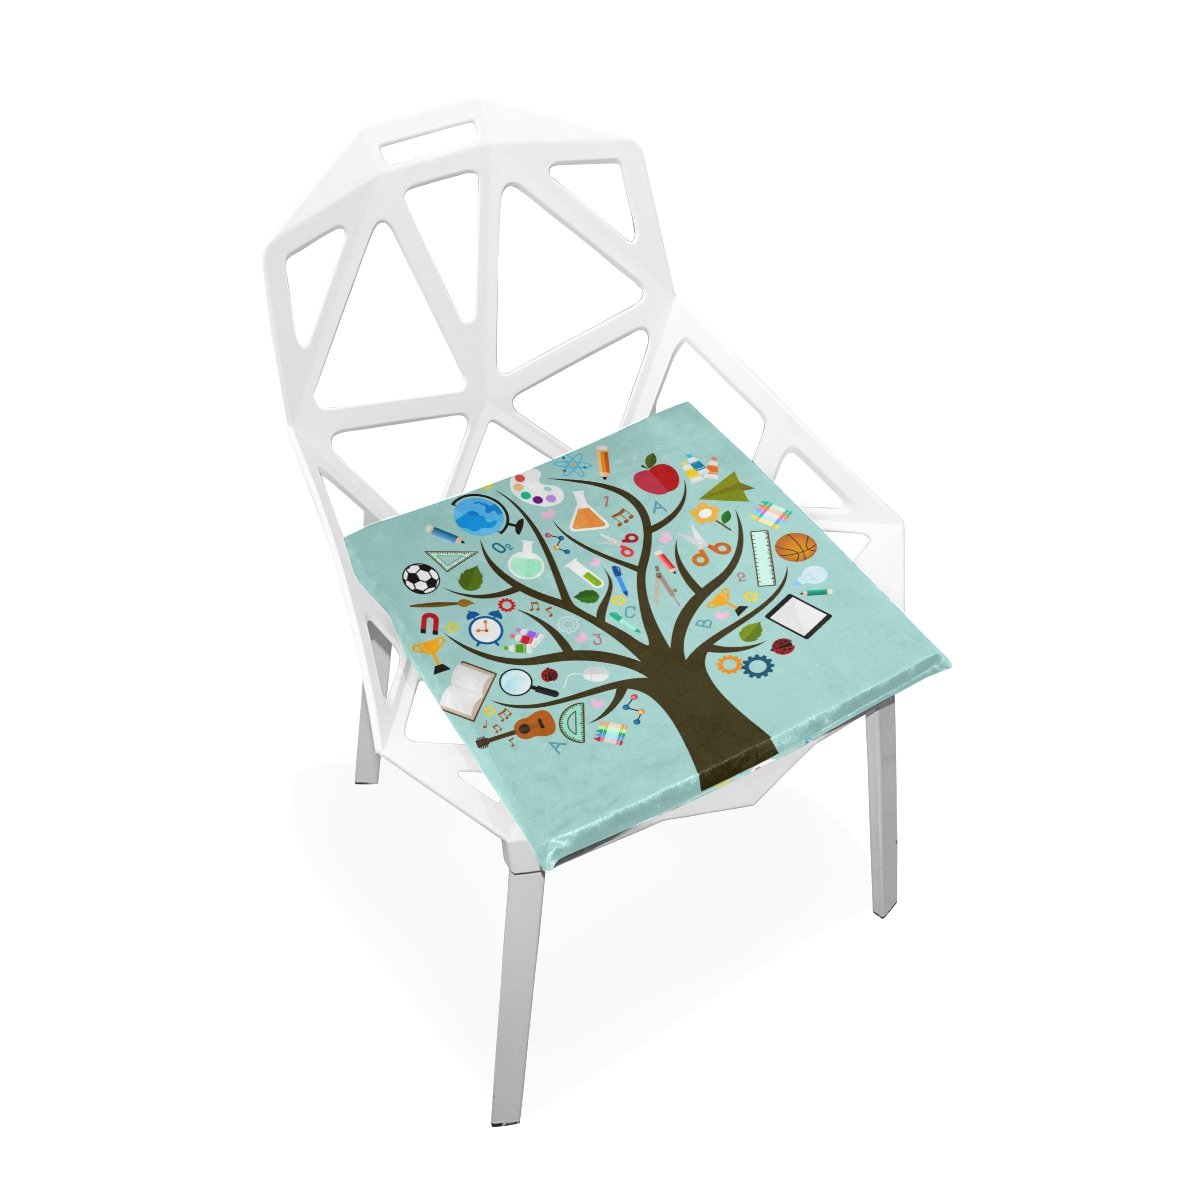 DOENR Tool Tree Seat Cushion Chair Cushions Covers Set Decorative Indoor Outdoor Velvet Double Printing Design Soft Seat Cushion 16 x 16